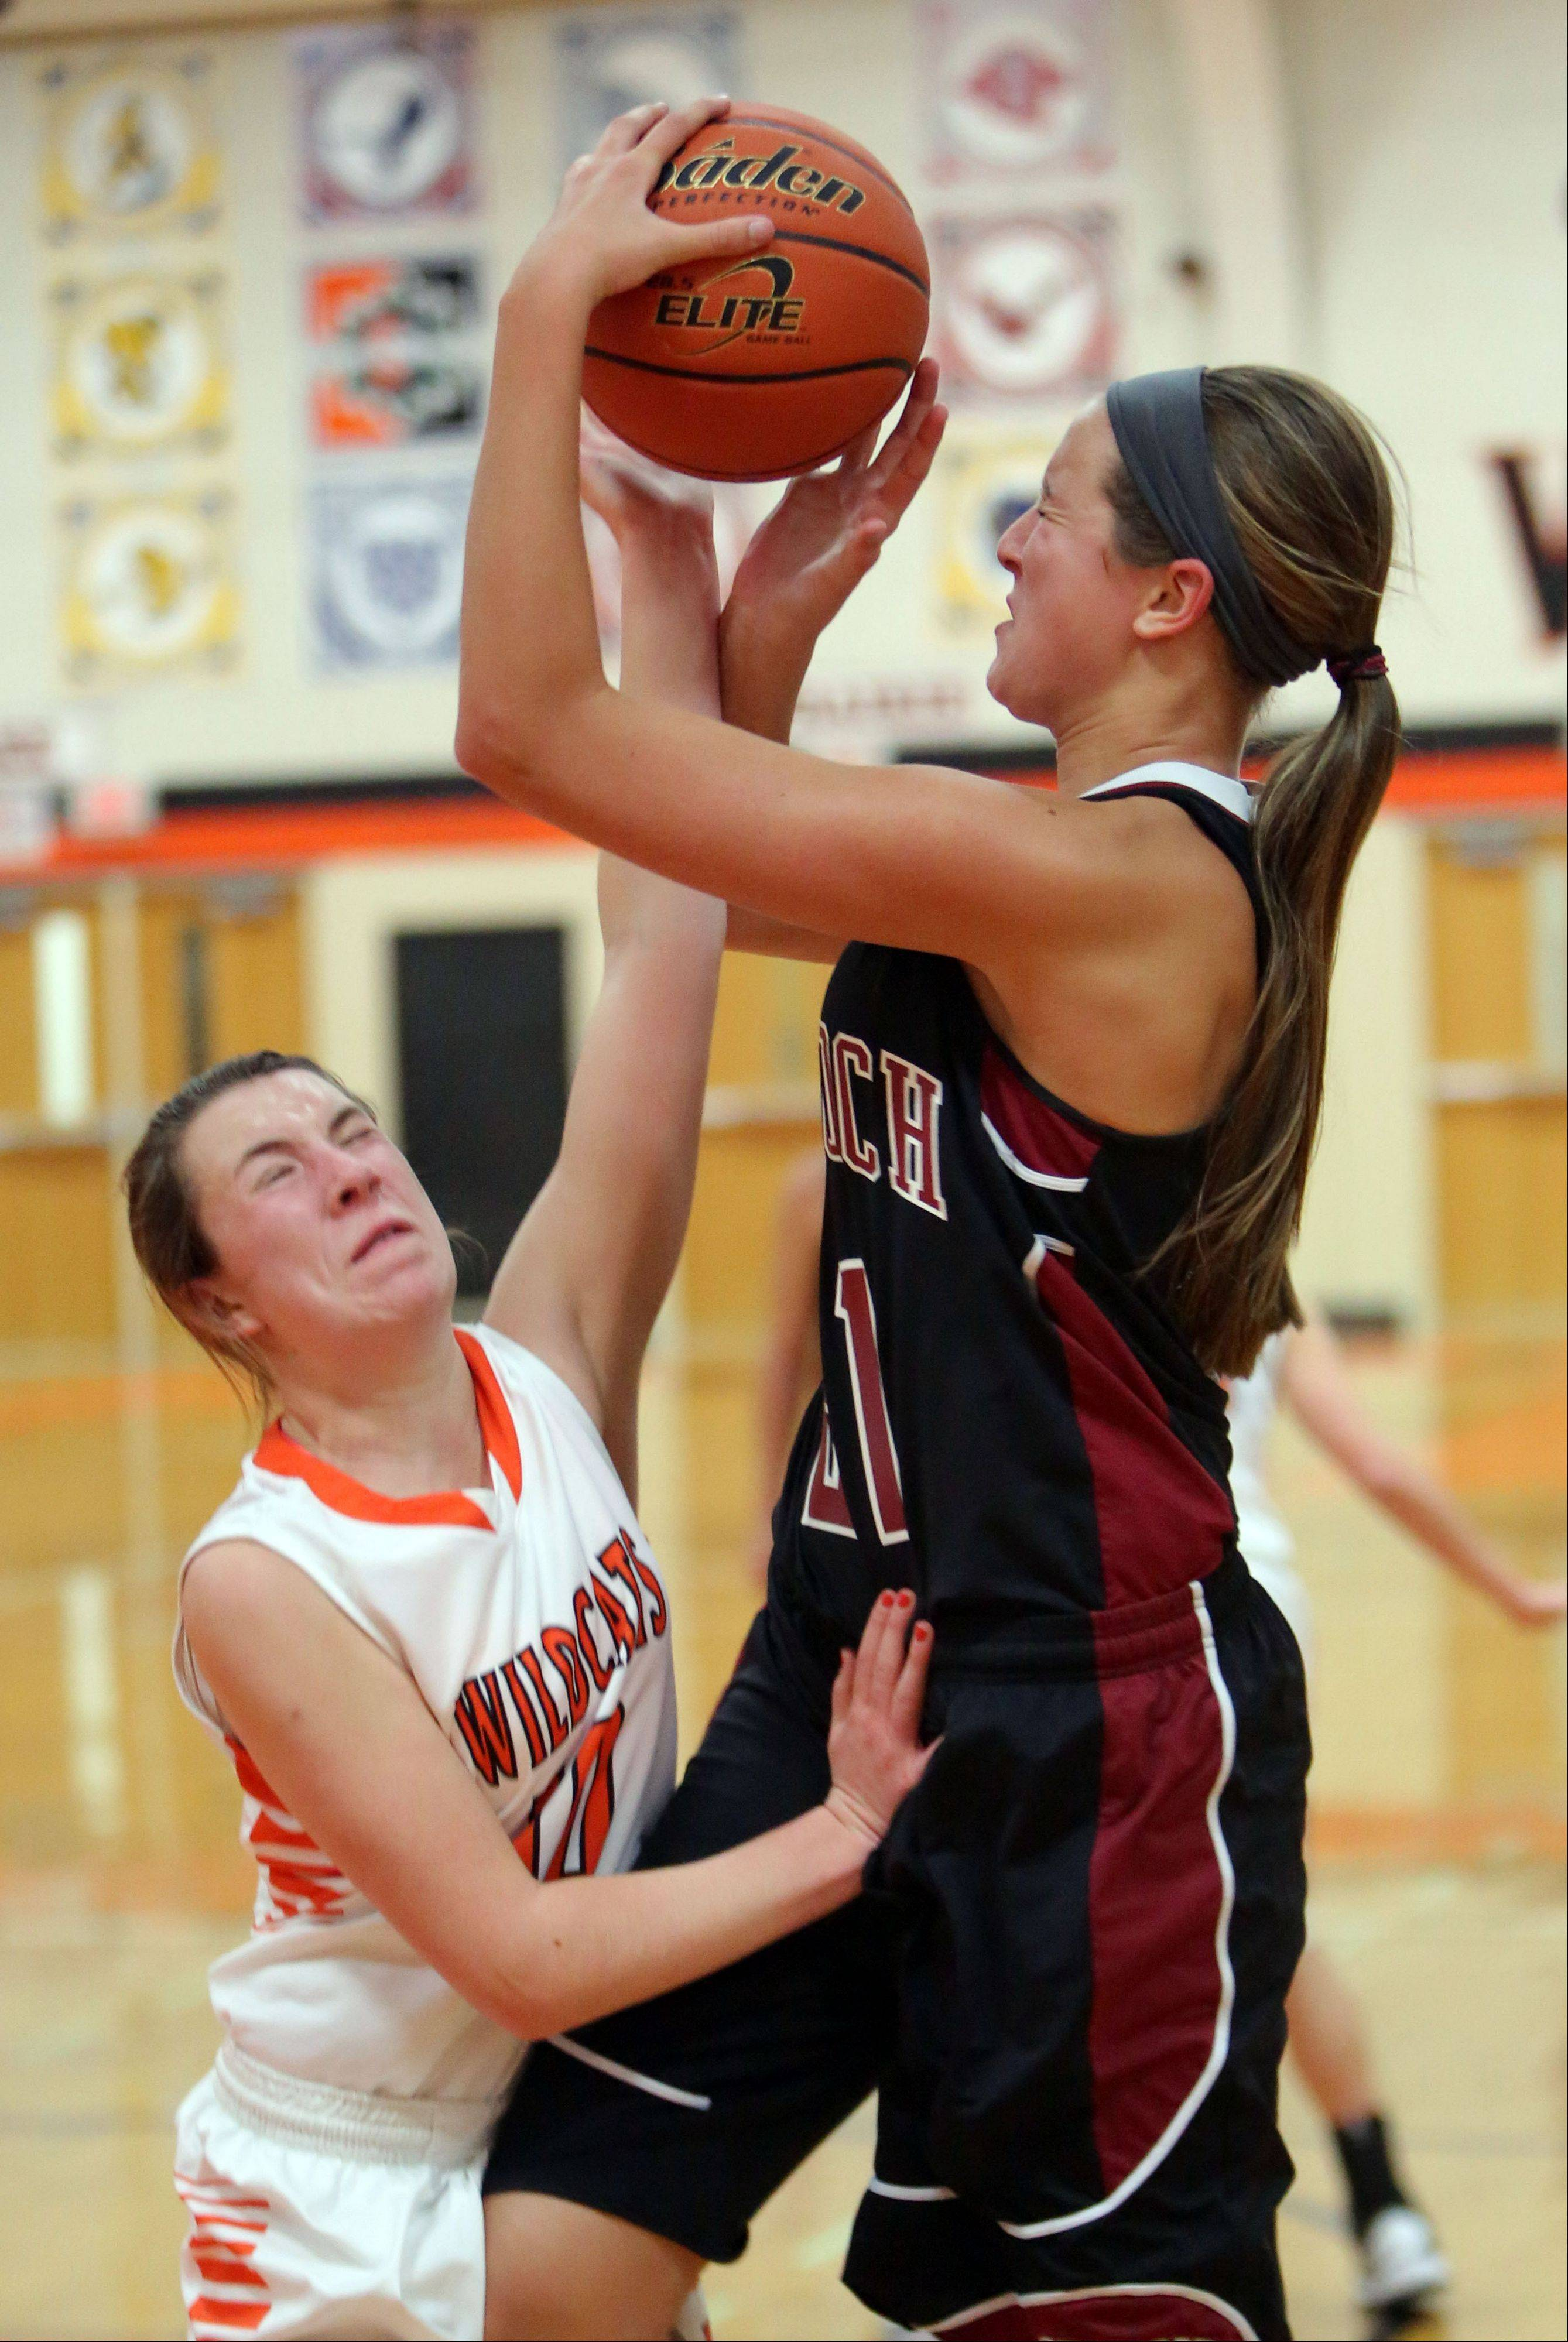 Steve Lundy/slundy@dailyherald.com Antioch's Carly McCameron, right, drives to the hoop on Libertyville's Maggie Piazzi on Wednesday at Libertyville.